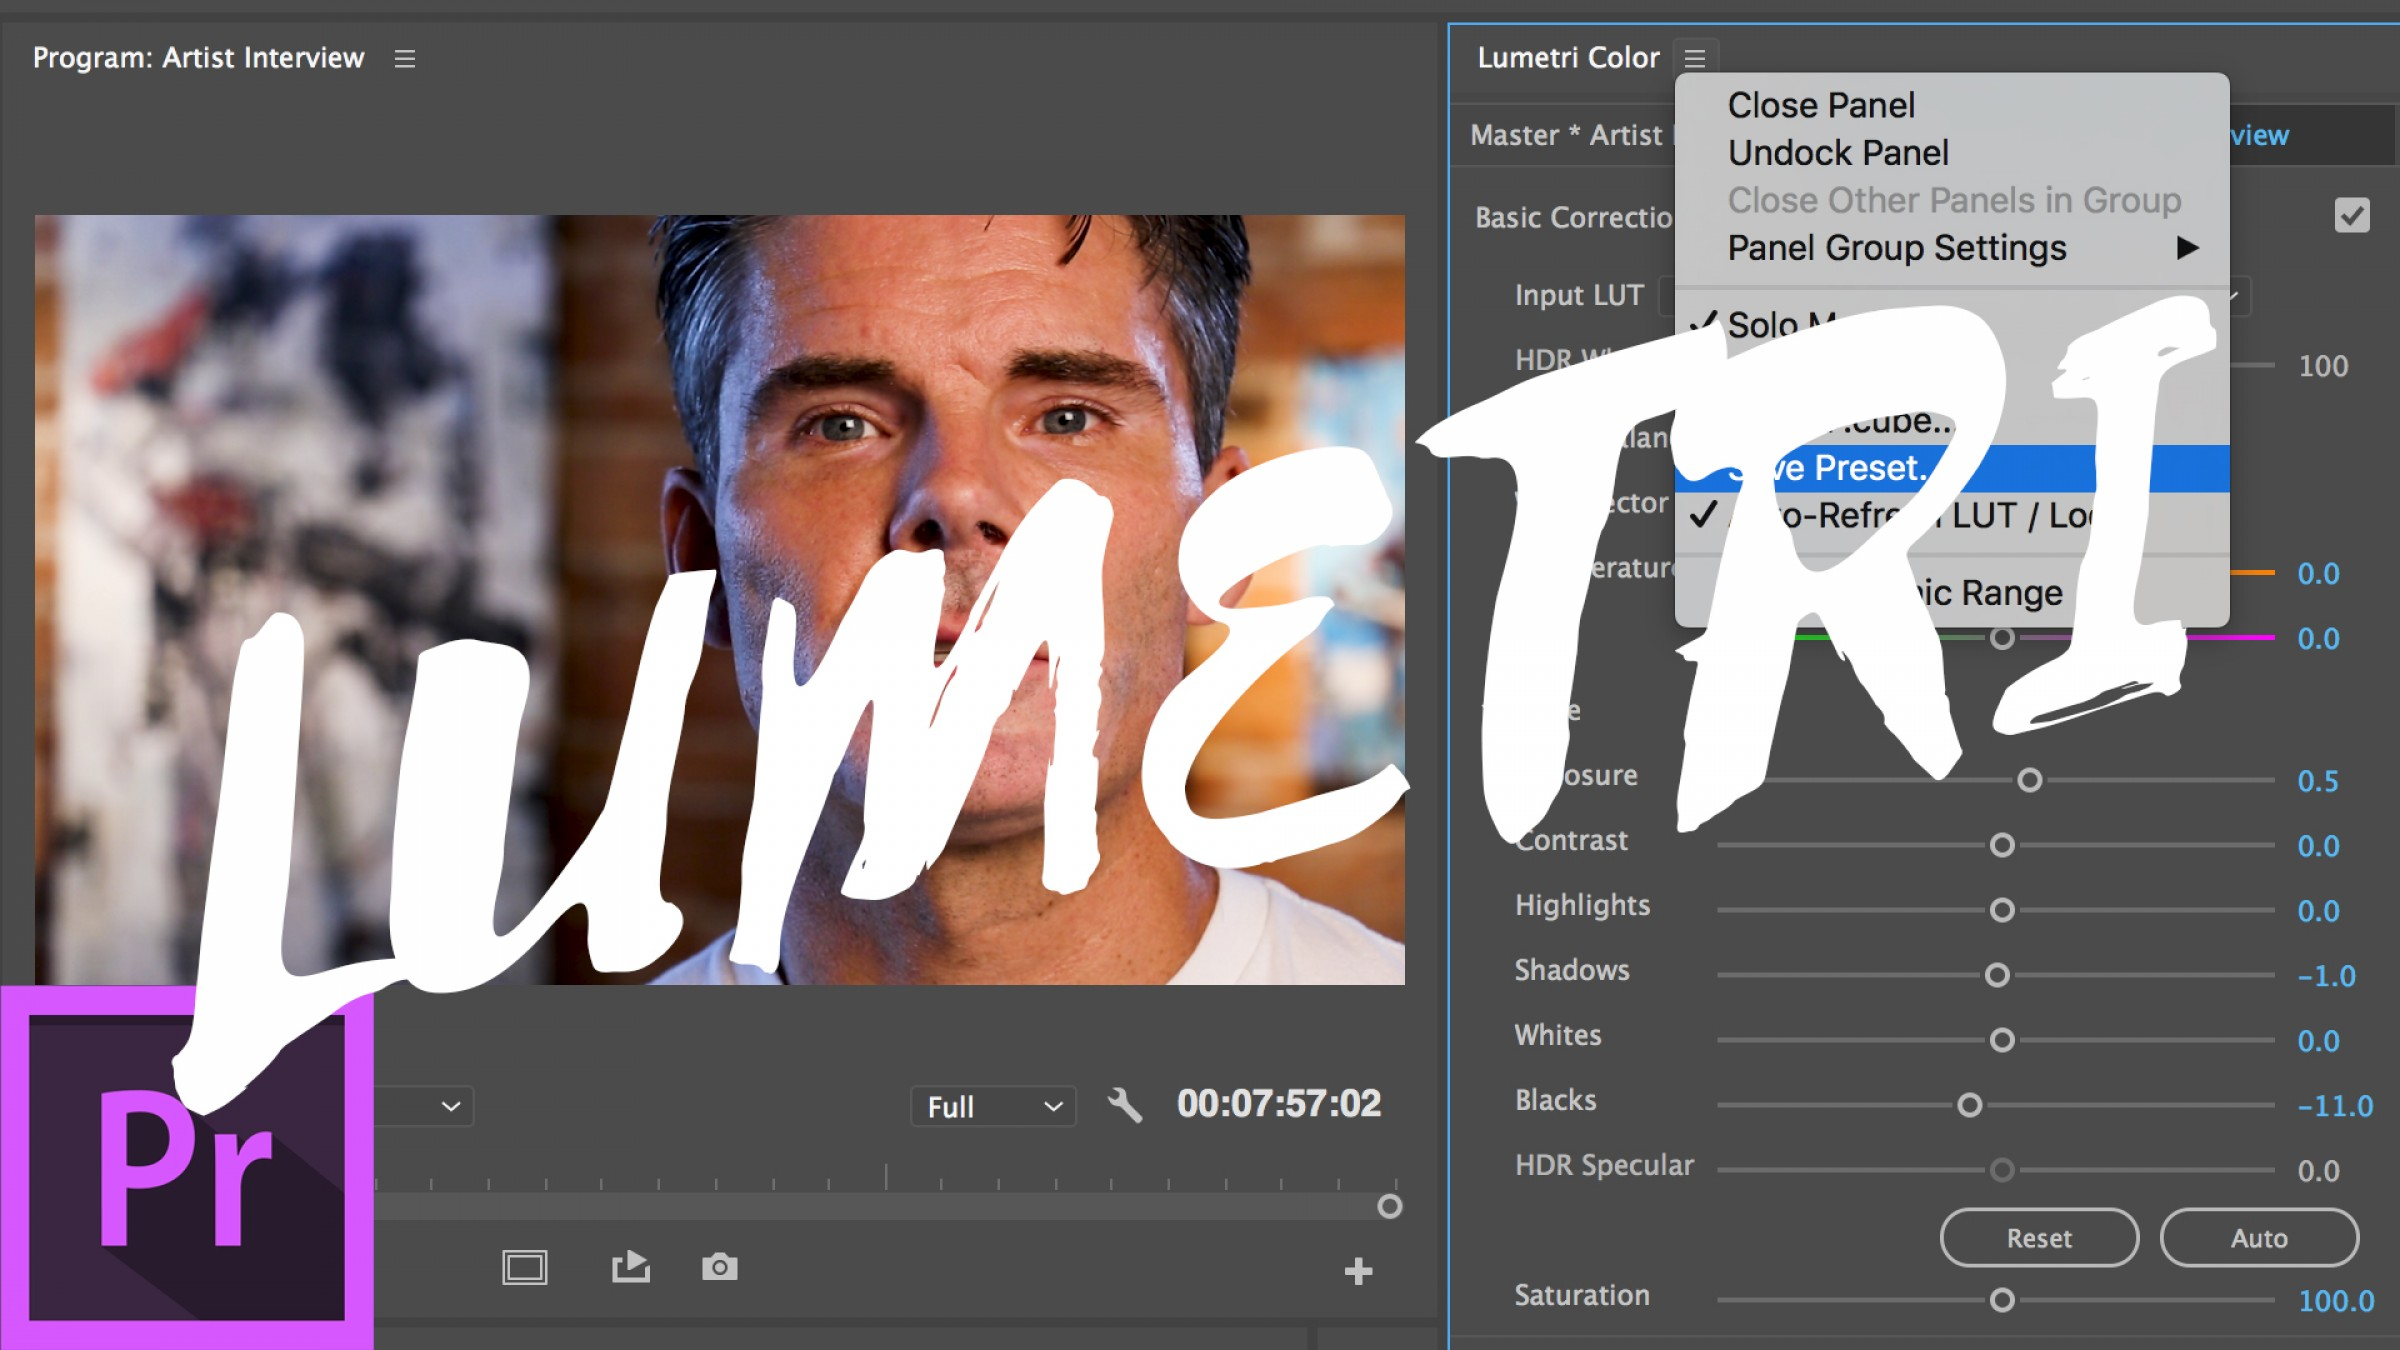 How to Create and Apply Lumetri Color Presets in Adobe Premiere Pro in 3 Easy Steps